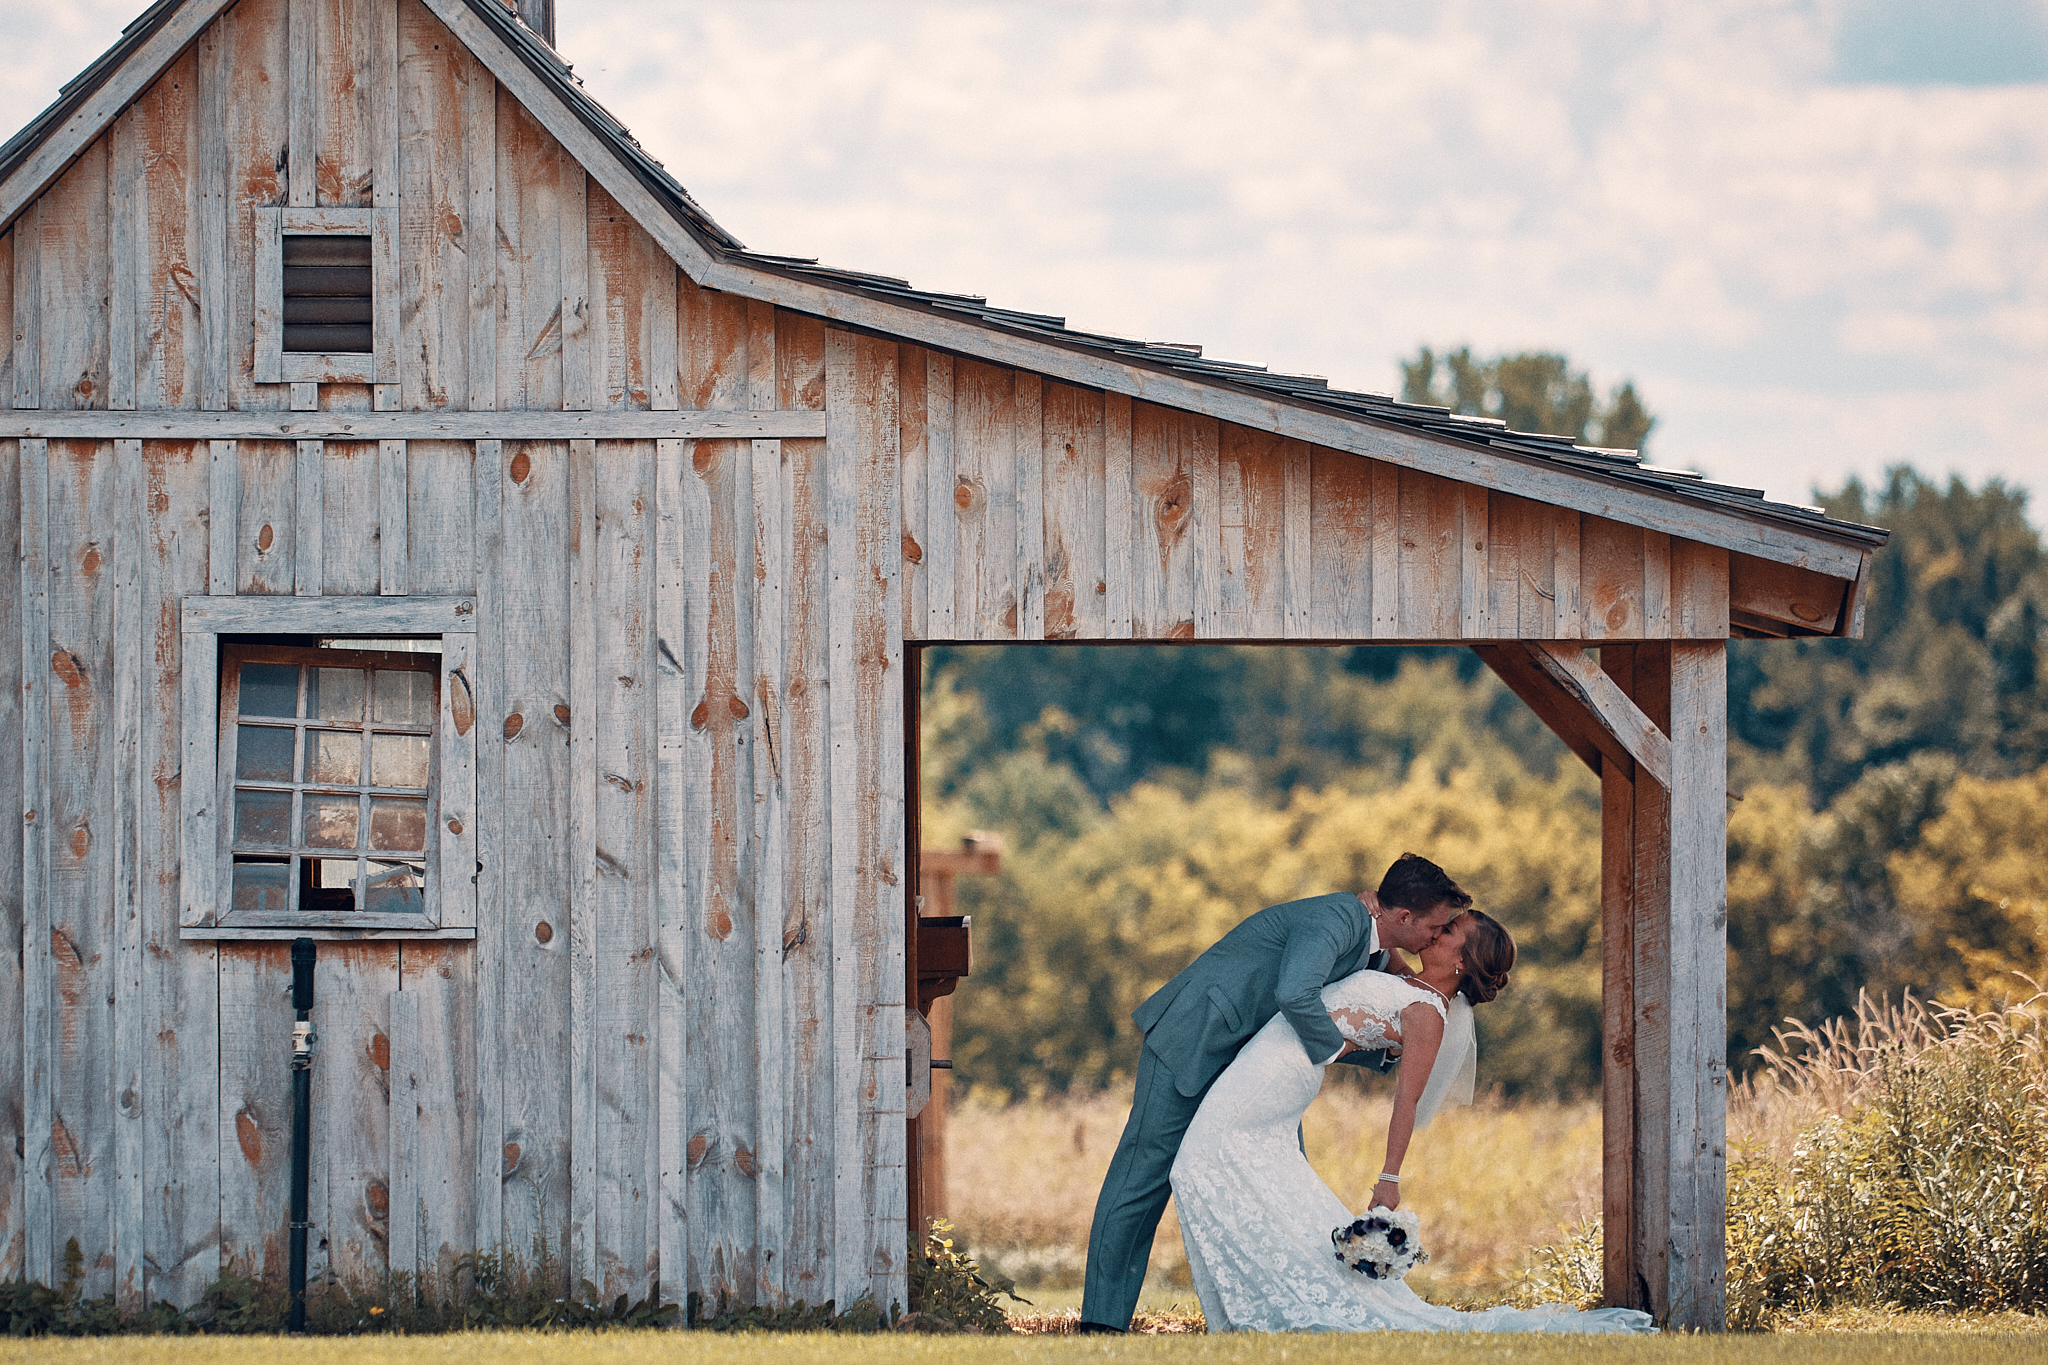 Perfect_Wedding_Photography_At_Outpost_Center_Chaska_By_High_End_Minneapolis_Brand_Photographer_Something_Candid_039.JPG